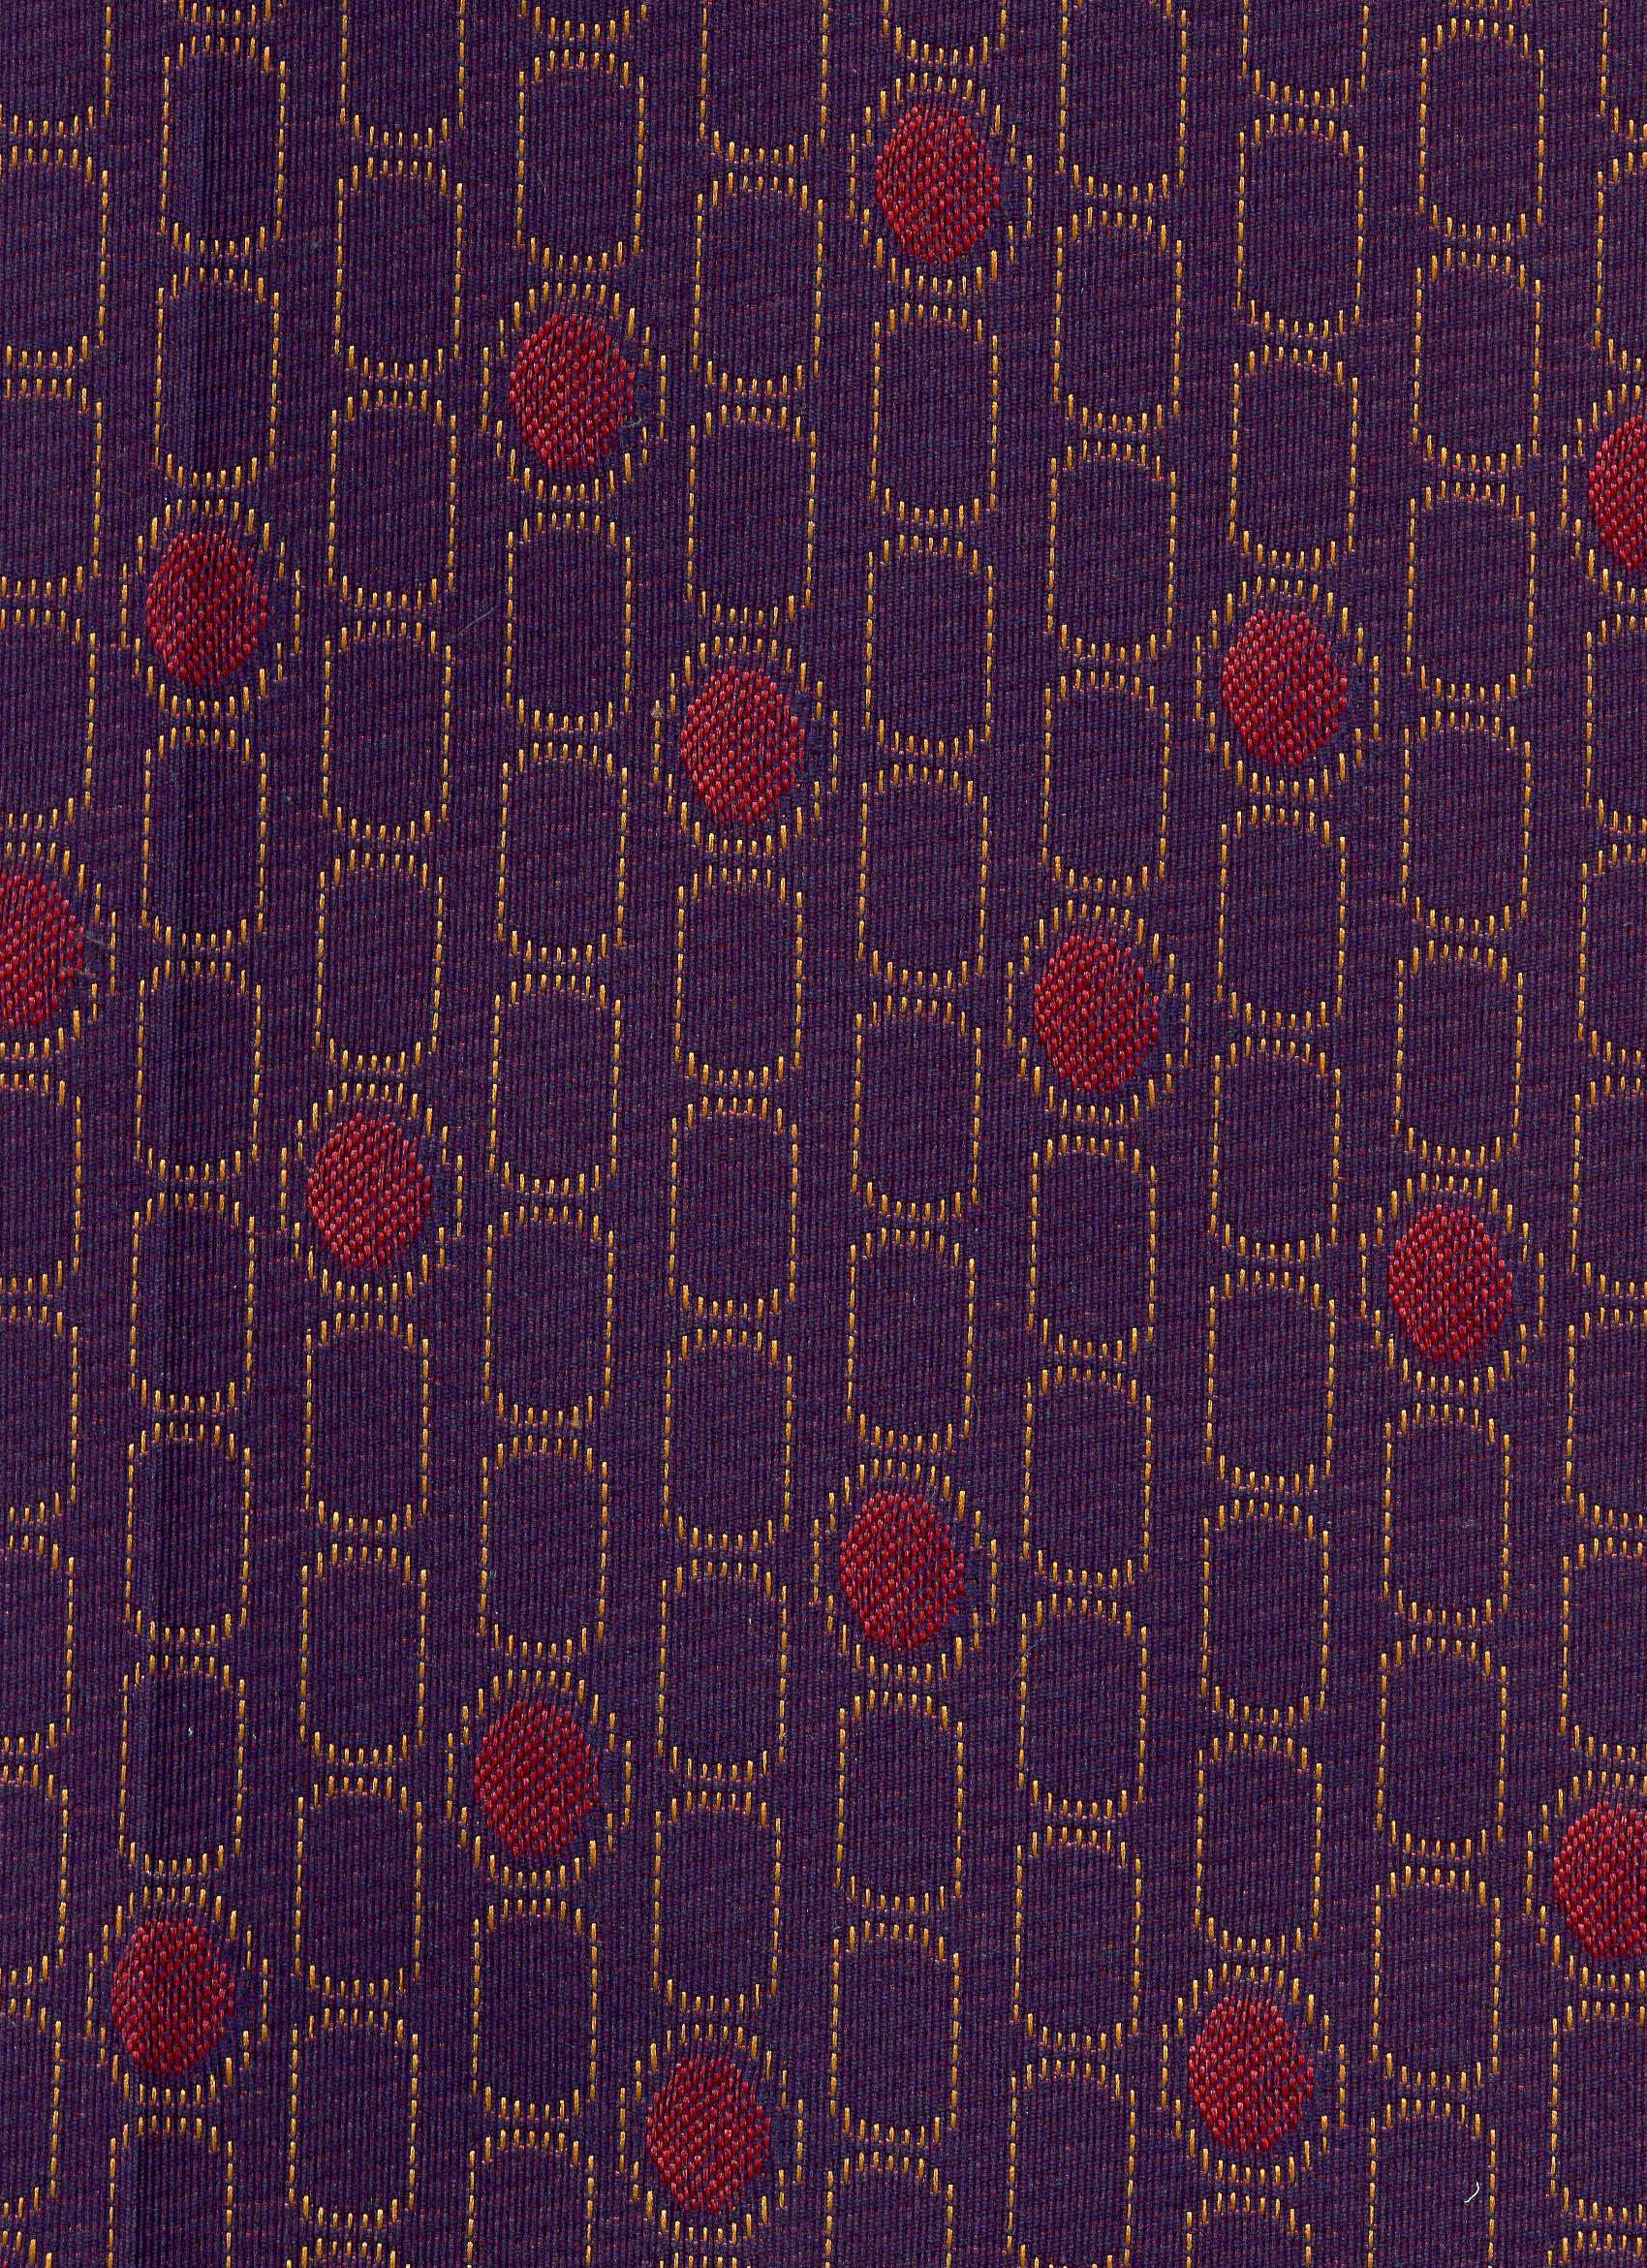 Purple and Plum Geometric Shapes